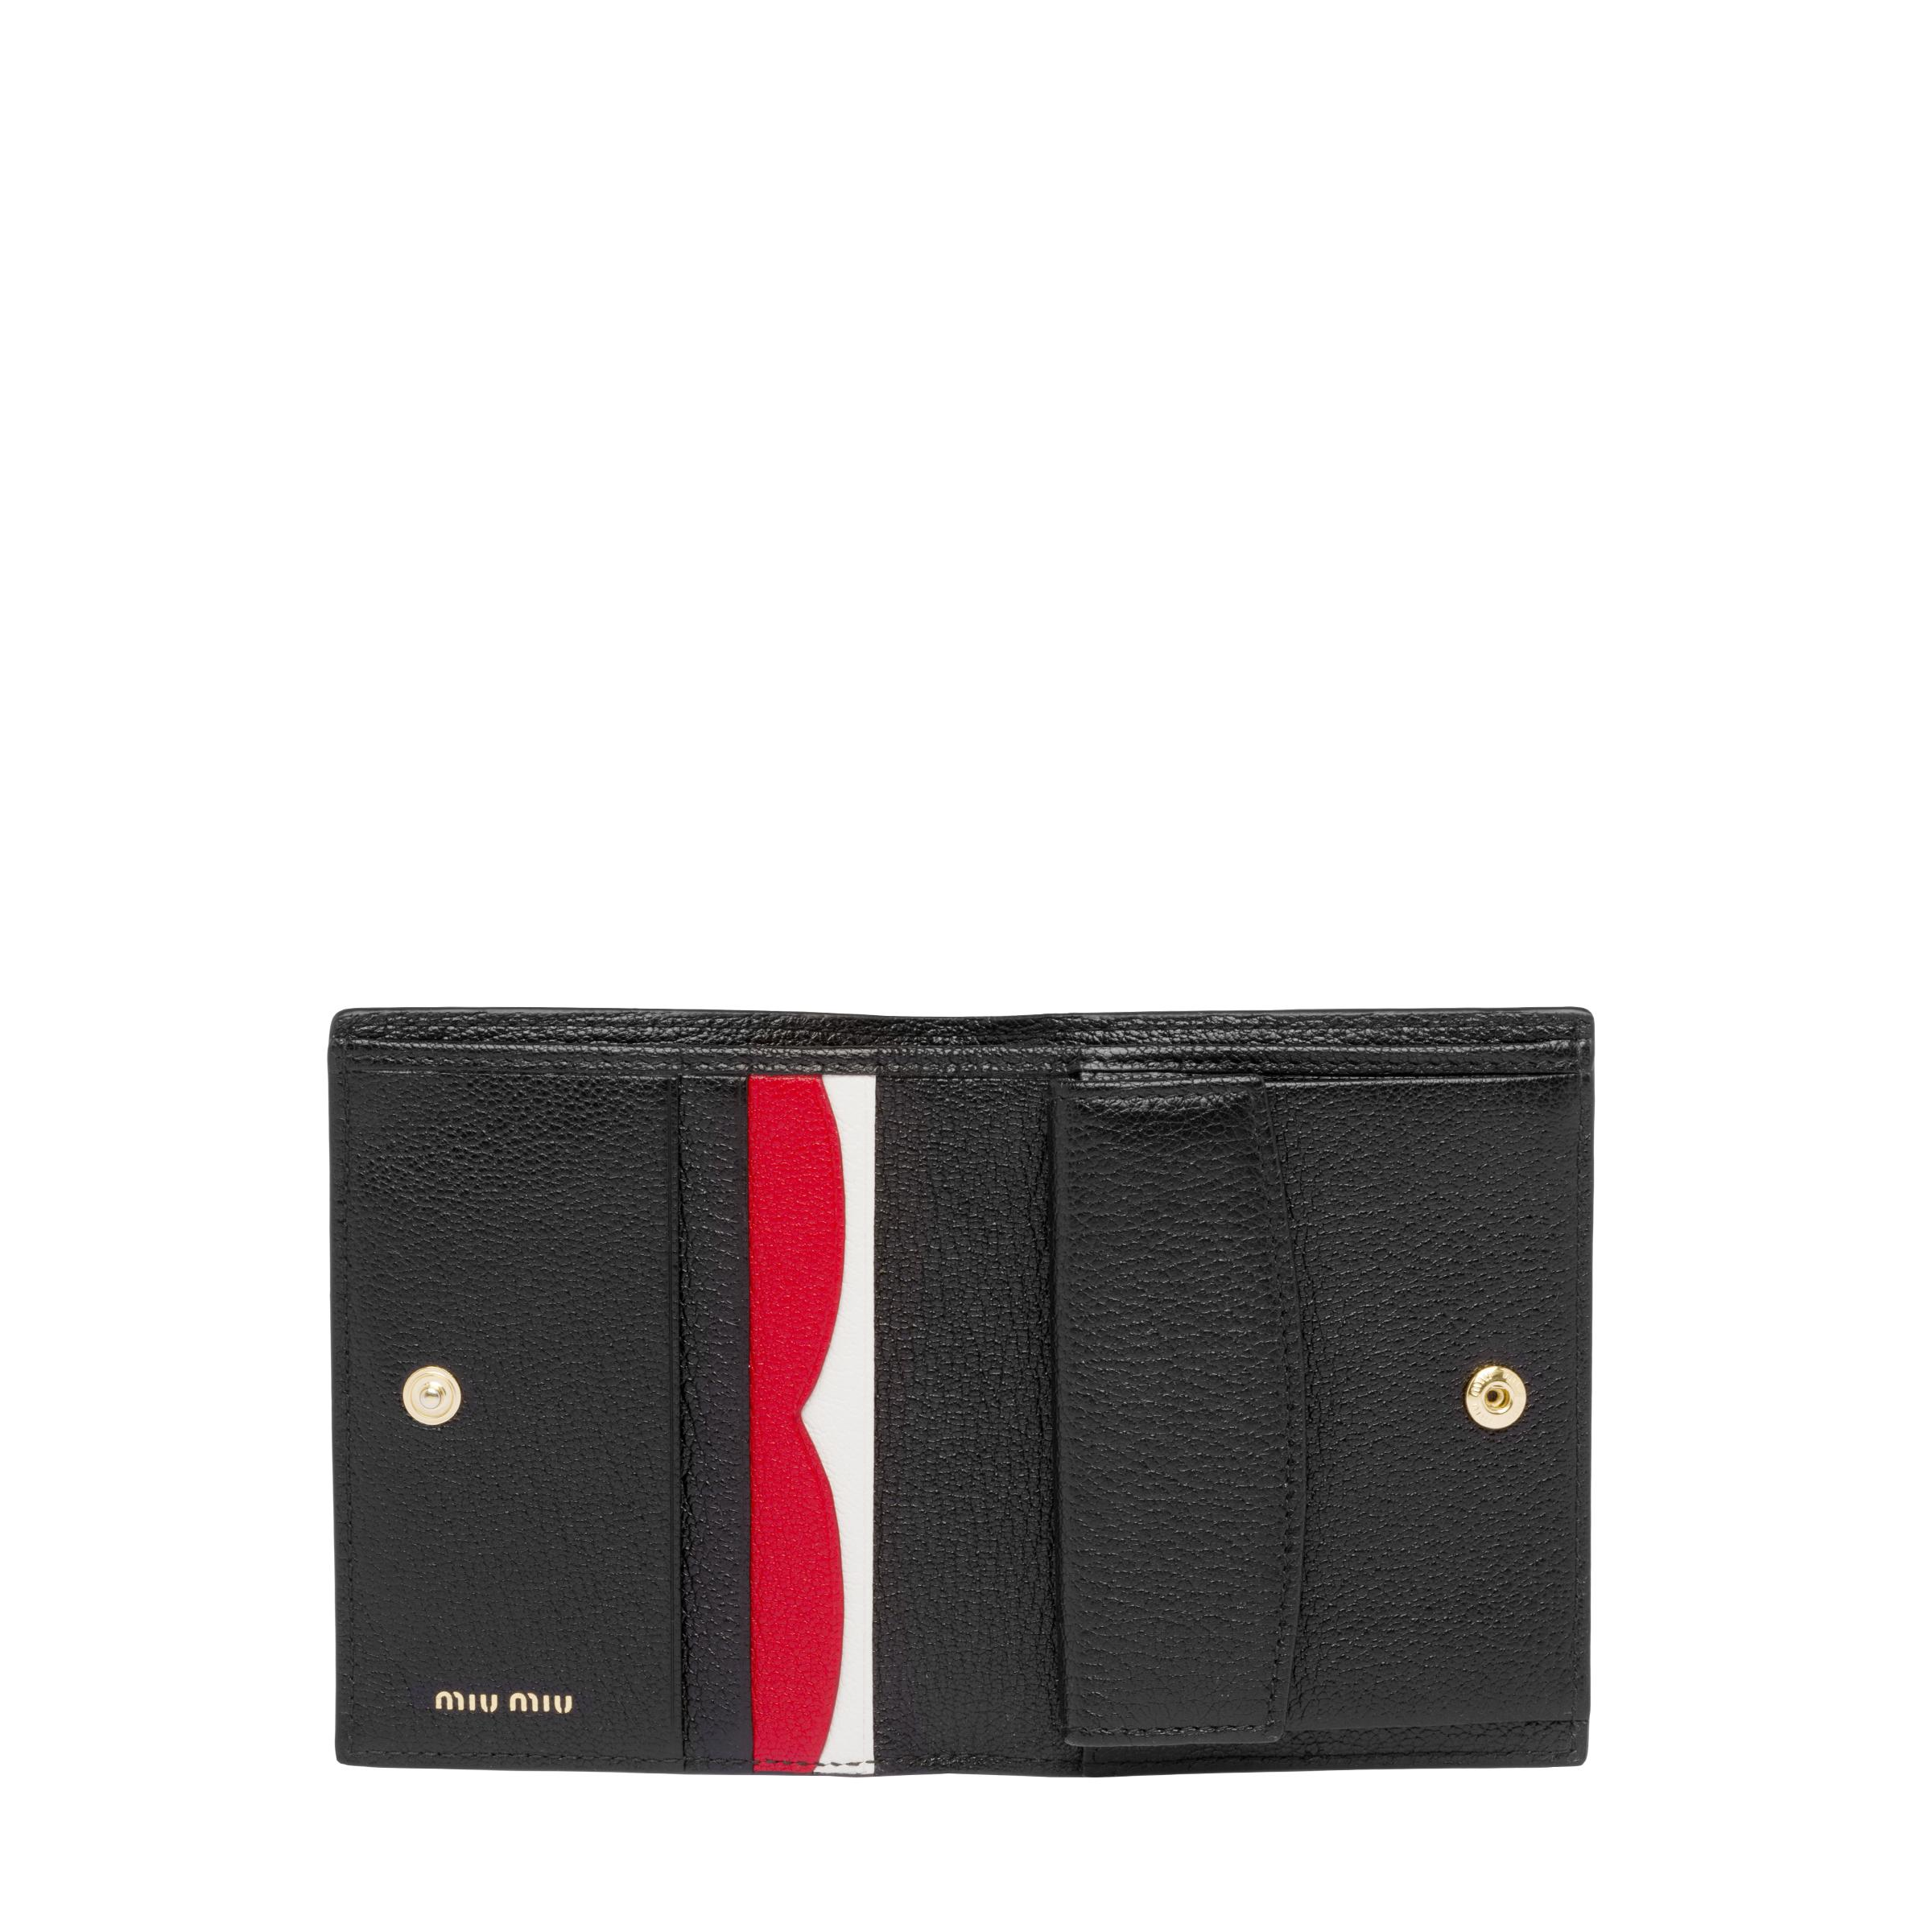 Madras Colour Leather Wallet Women Black/fiery Red 4